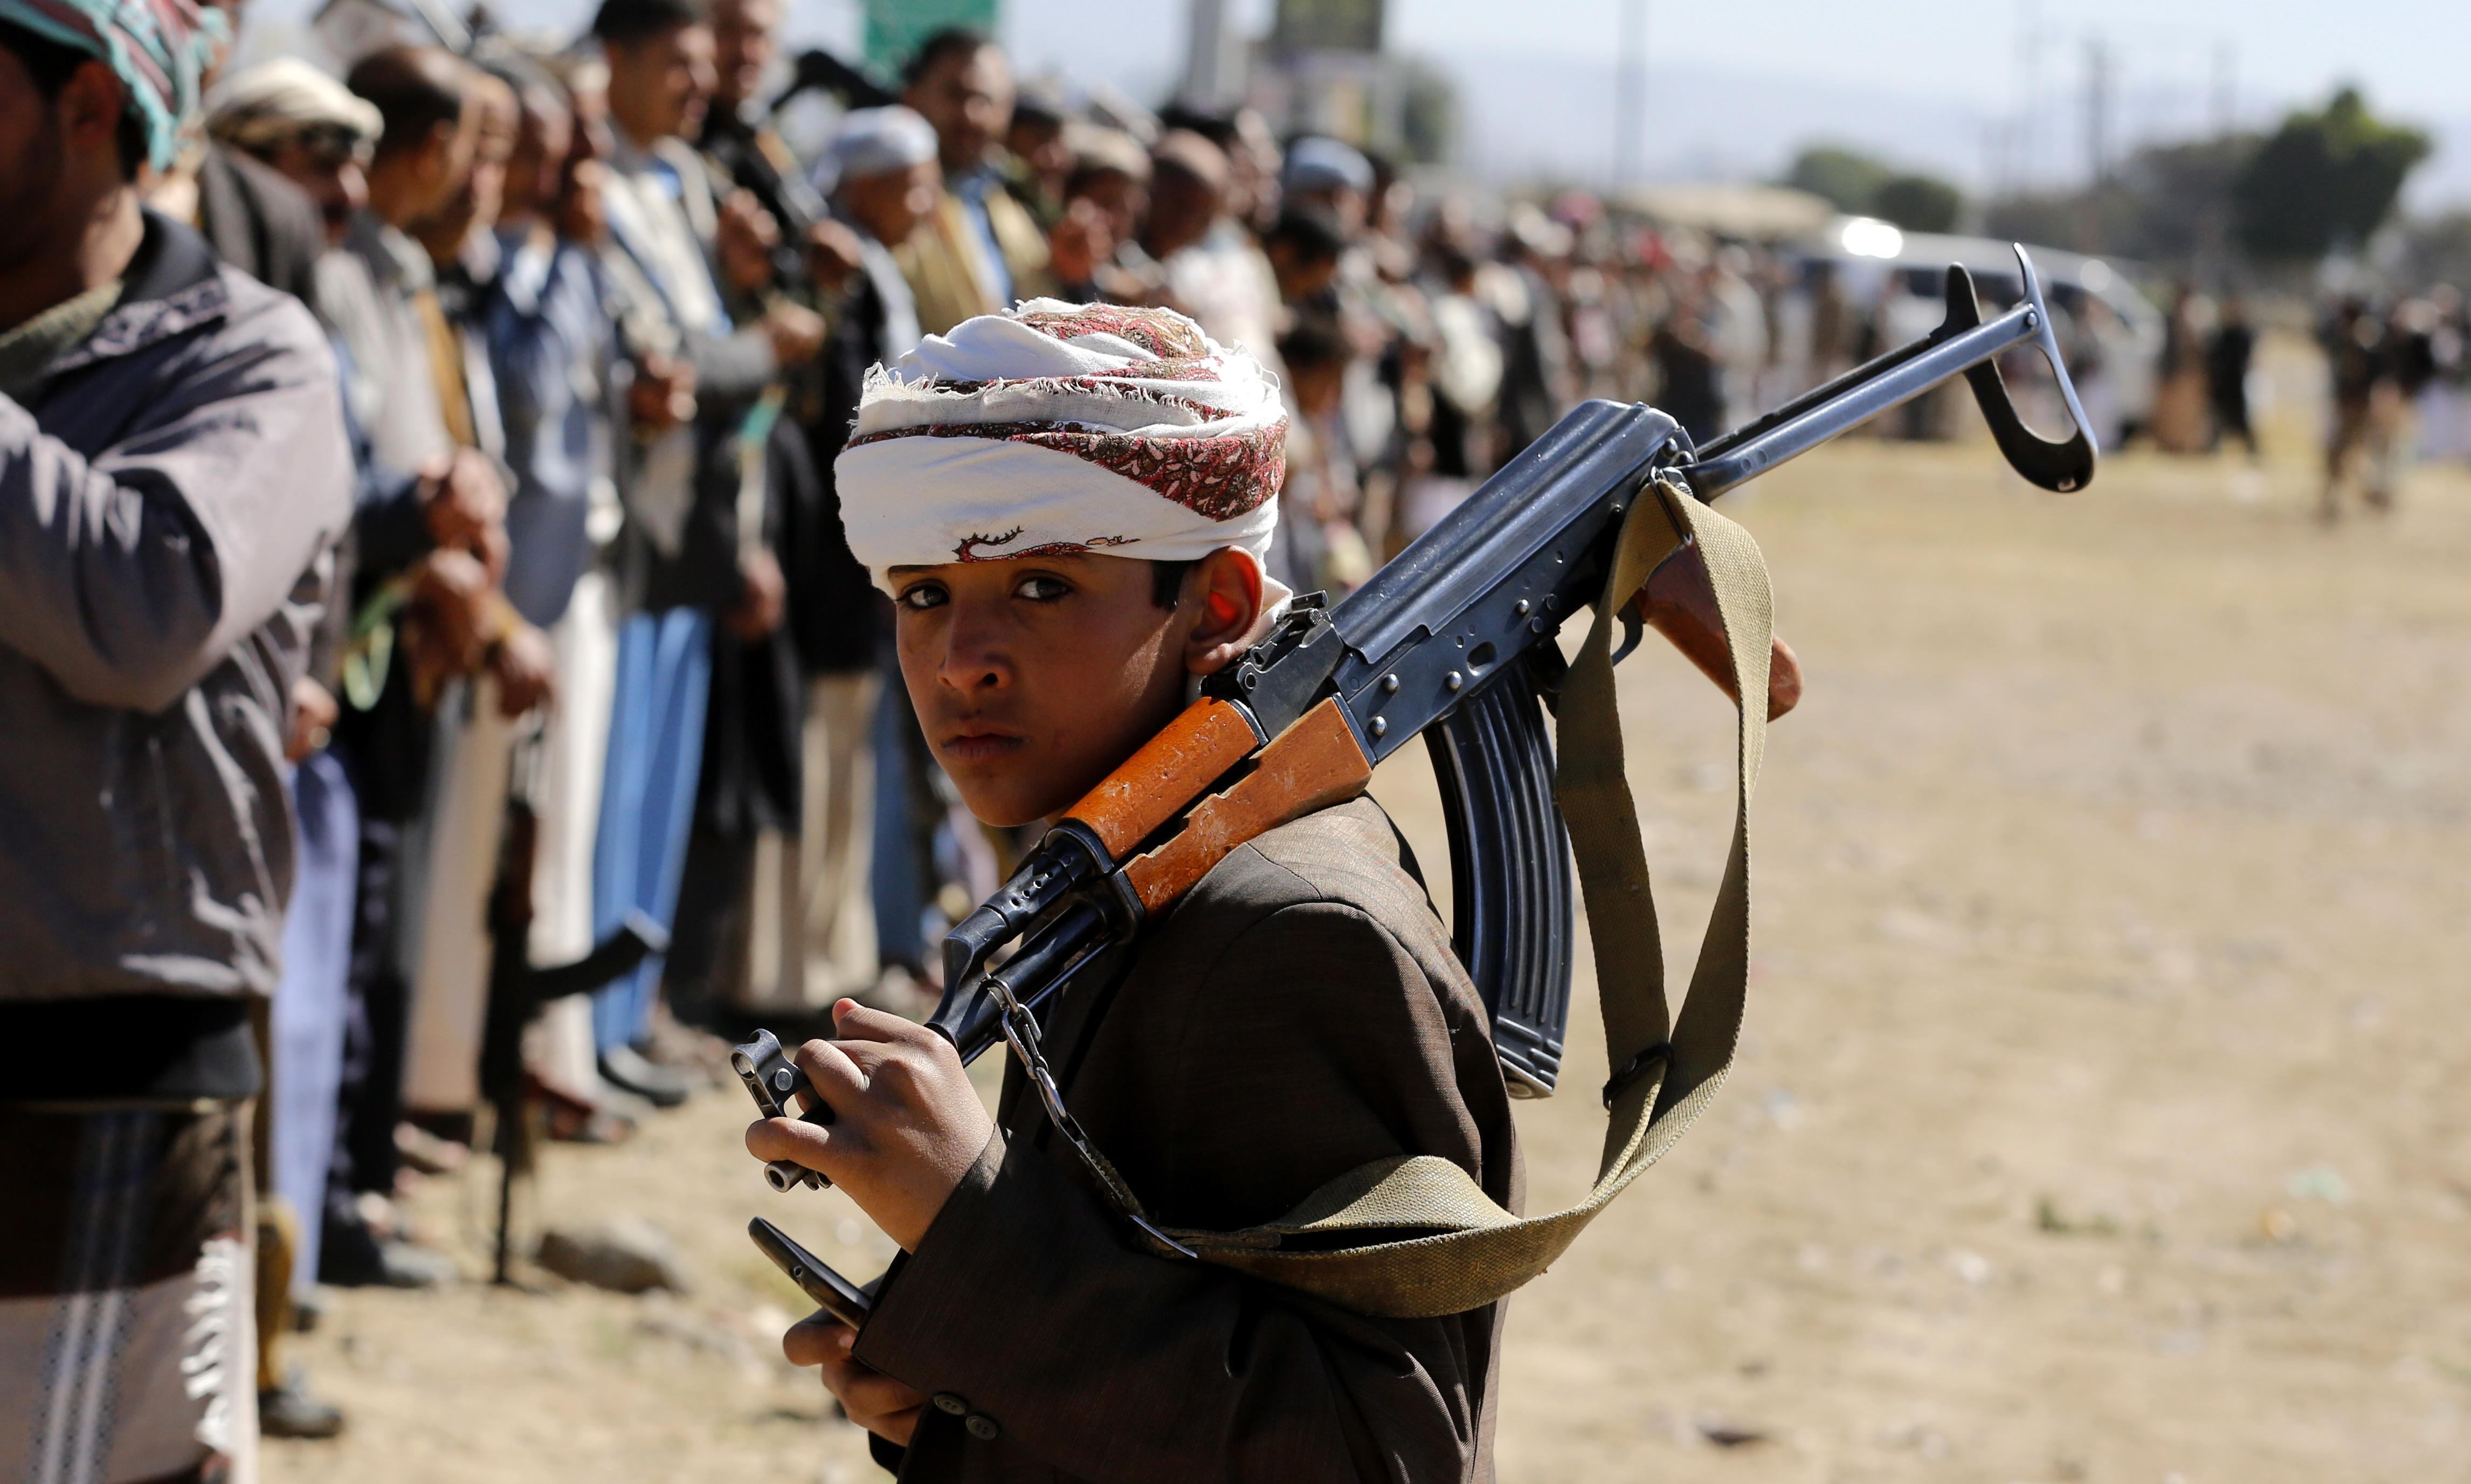 Yemen and Houthi rebels agree to withdrawal deal